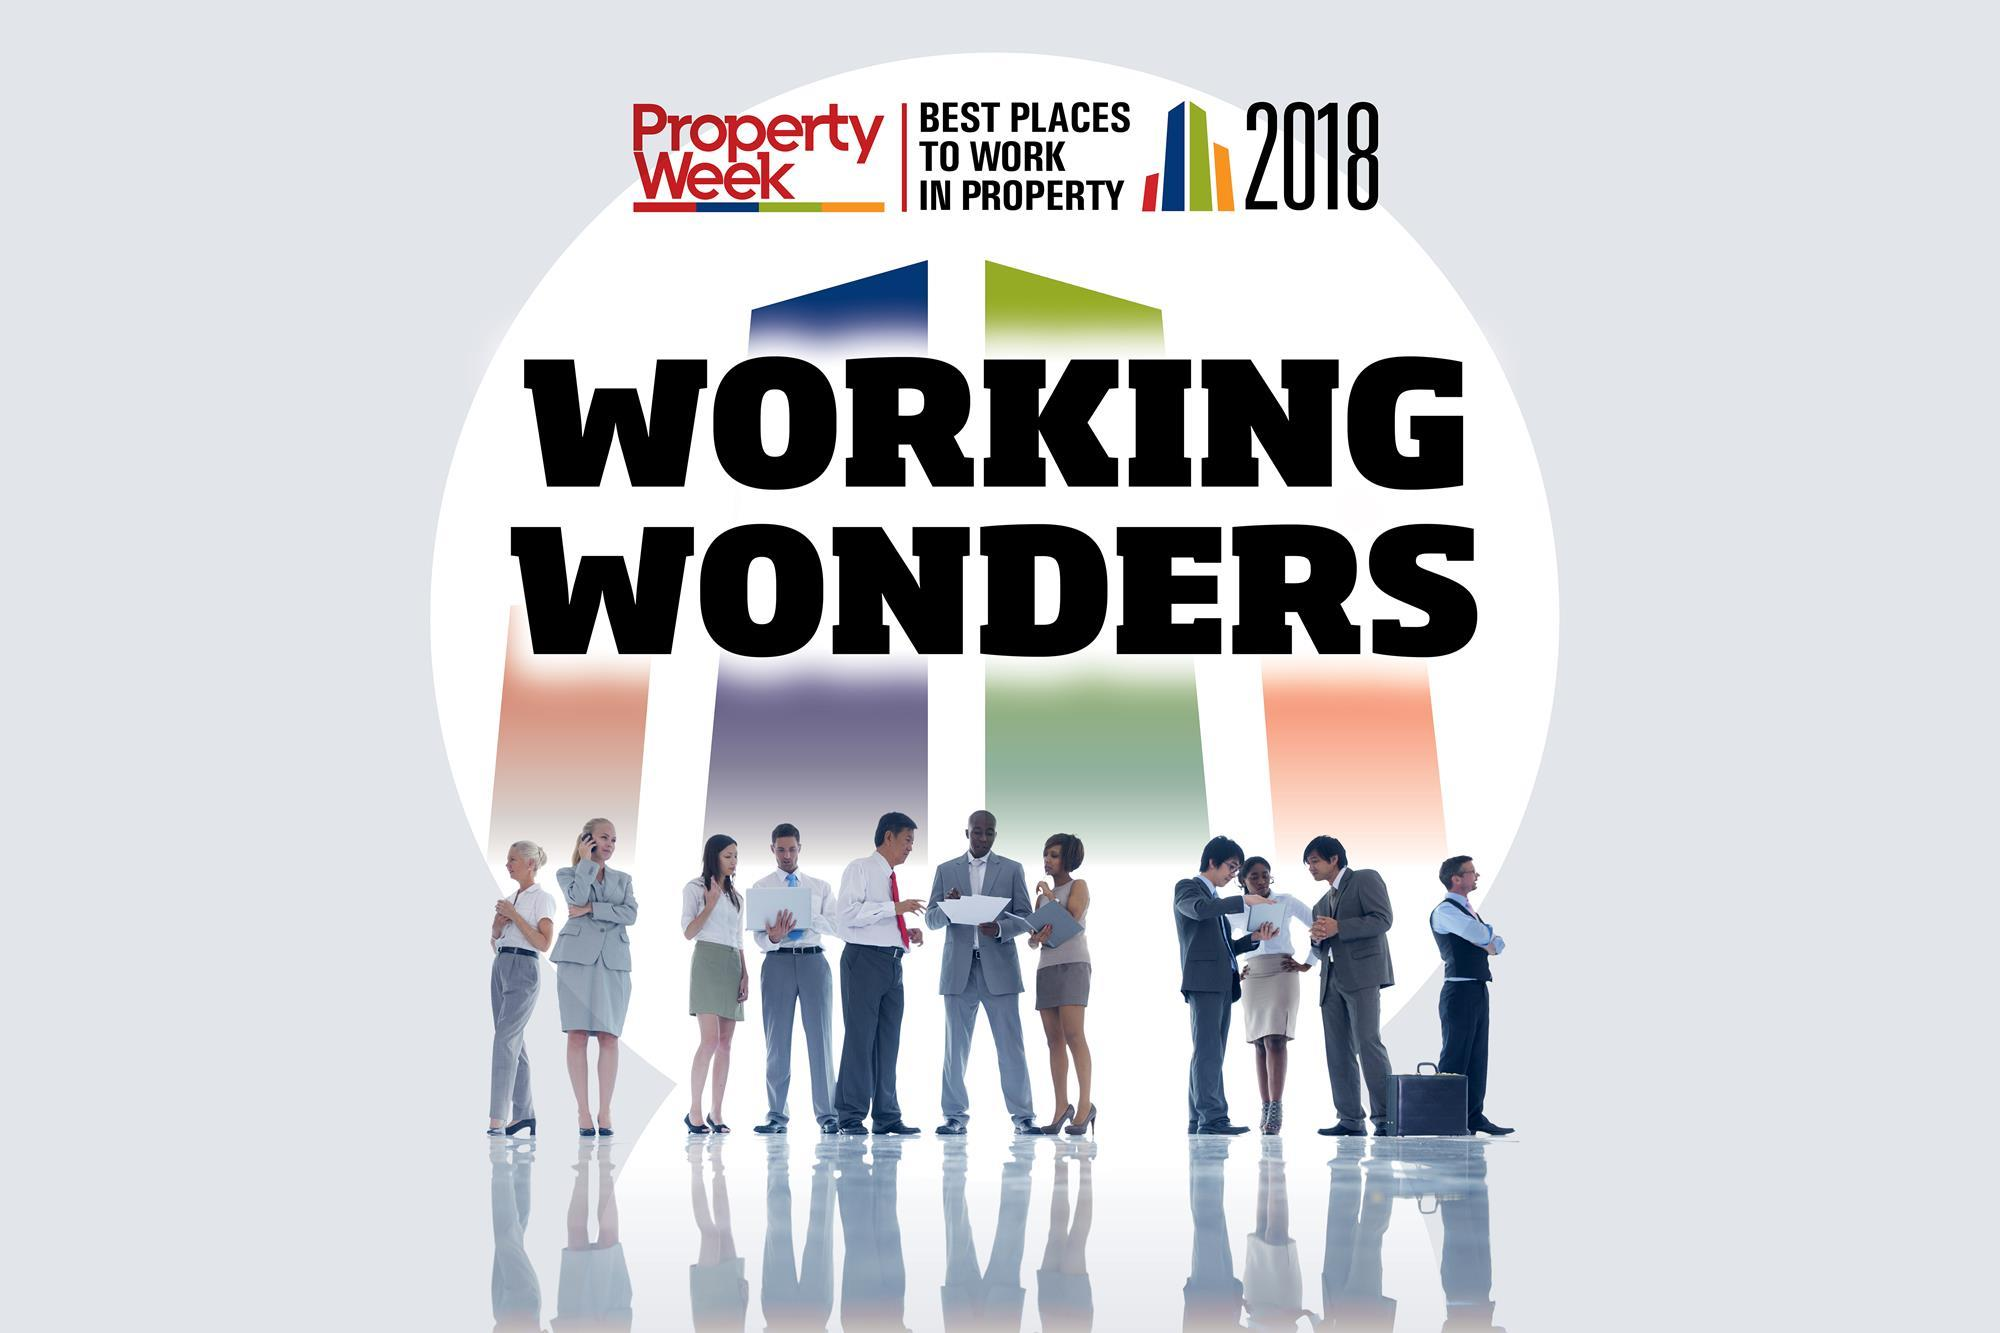 Best Places to Work in Property 2018 | Insight | Property Week